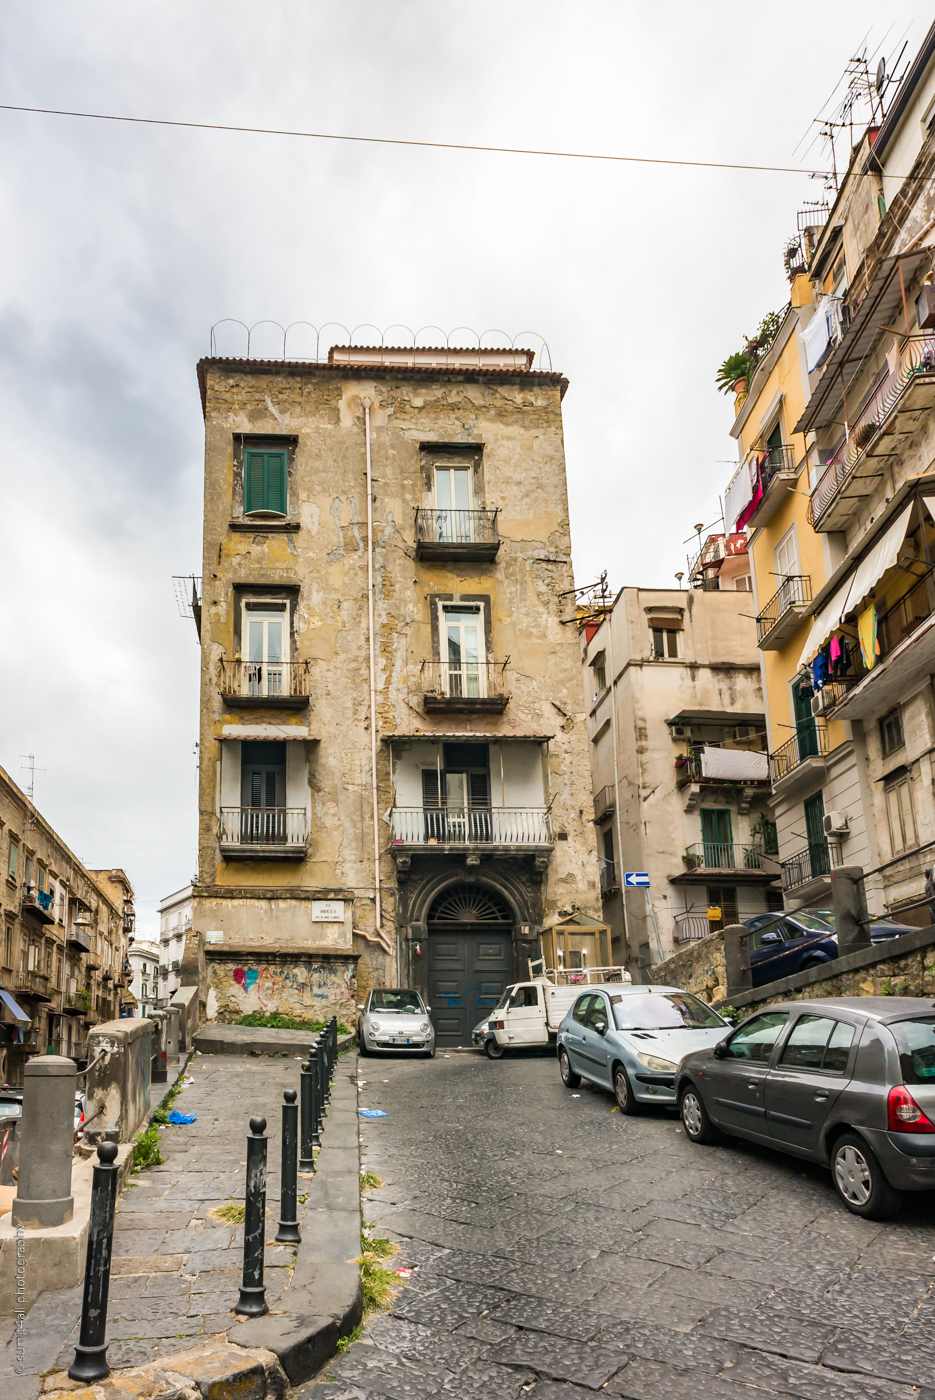 an old and worn out building in the centre of naples, italy